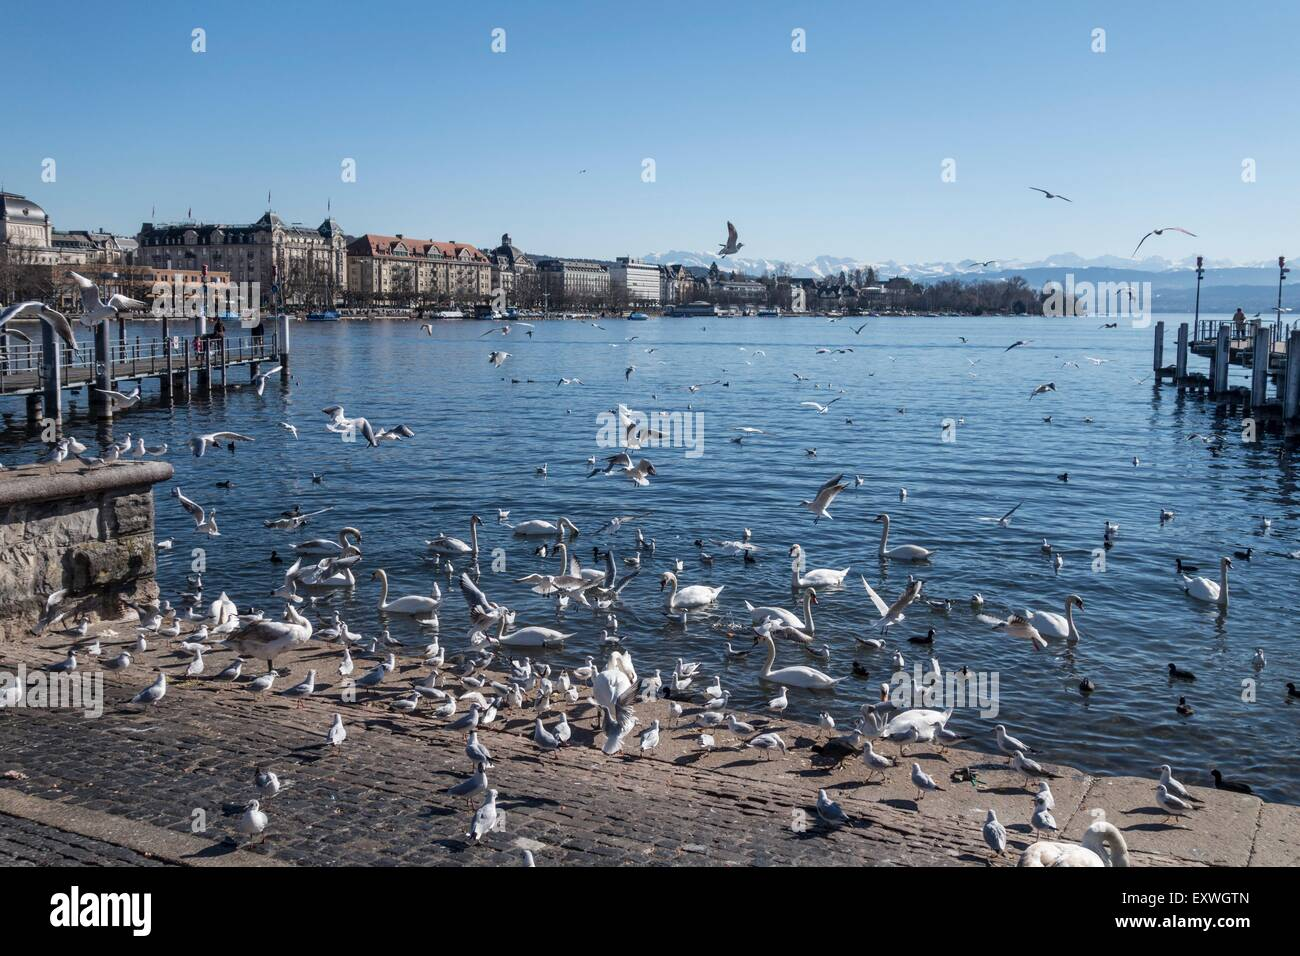 Swans and birds, Lake Zurich, Zurich, Switzerland, Europa - Stock Image